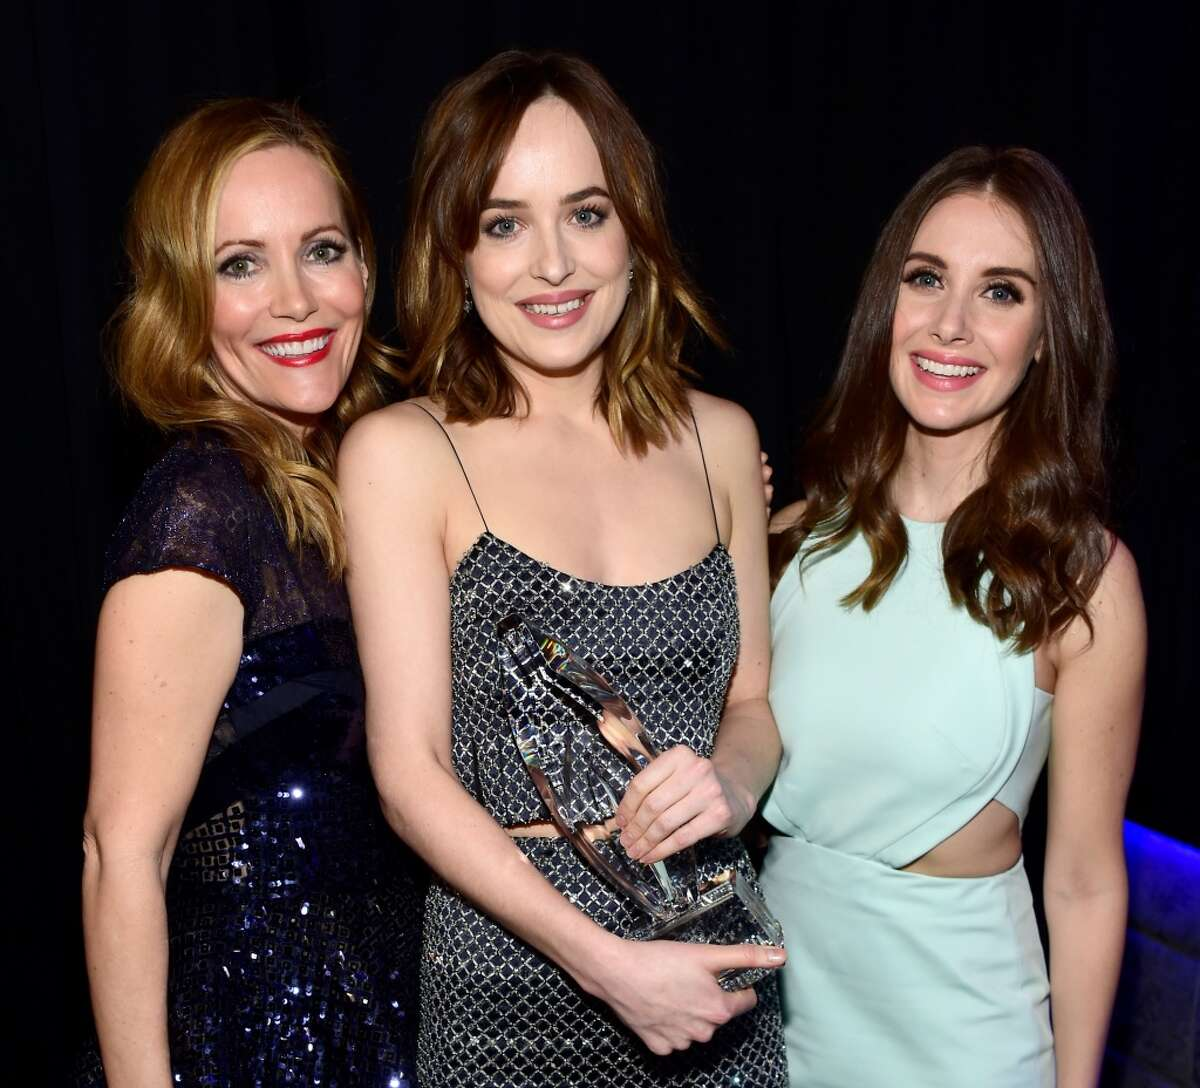 Actress Dakota Johnson (C), wearing Cartier jewelry, and actresses Leslie Mann (L) and Allison Brie attend the People's Choice Awards 2016 at Microsoft Theater on Jan. 6, 2016 in Los Angeles, Calif.